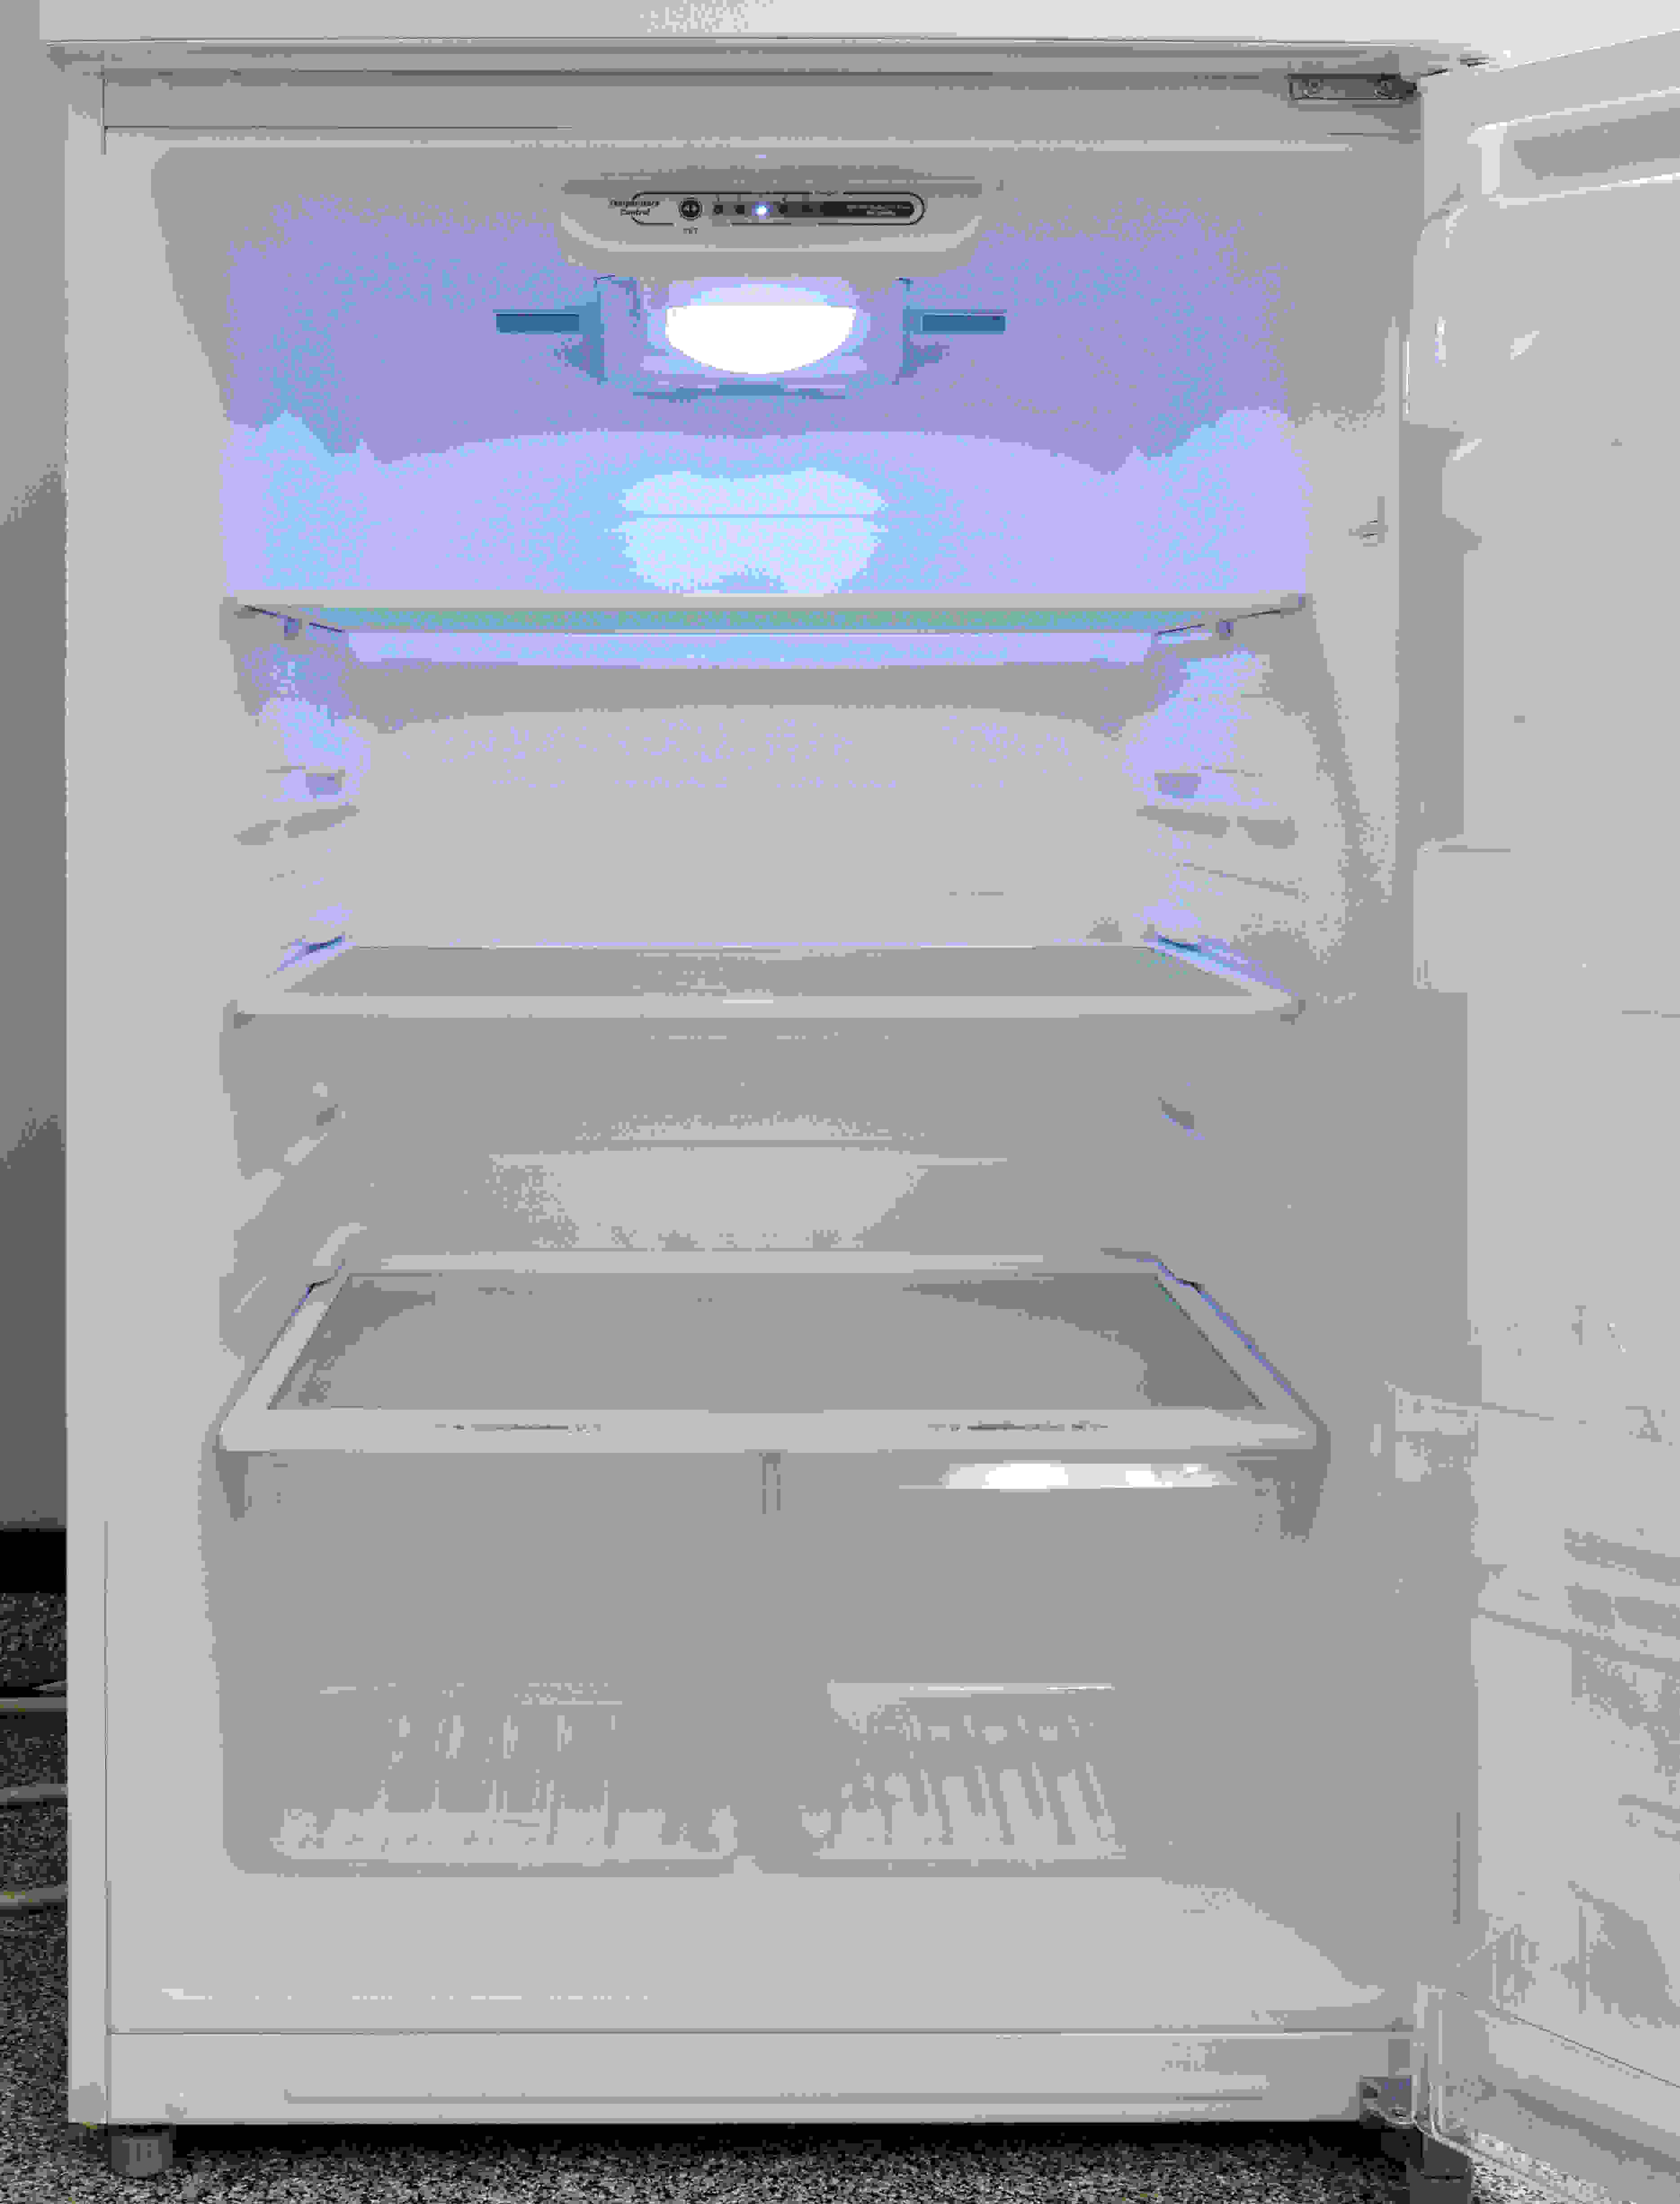 The fridge interior is roomy and features adjustable shelves, but the light was unusually dim.